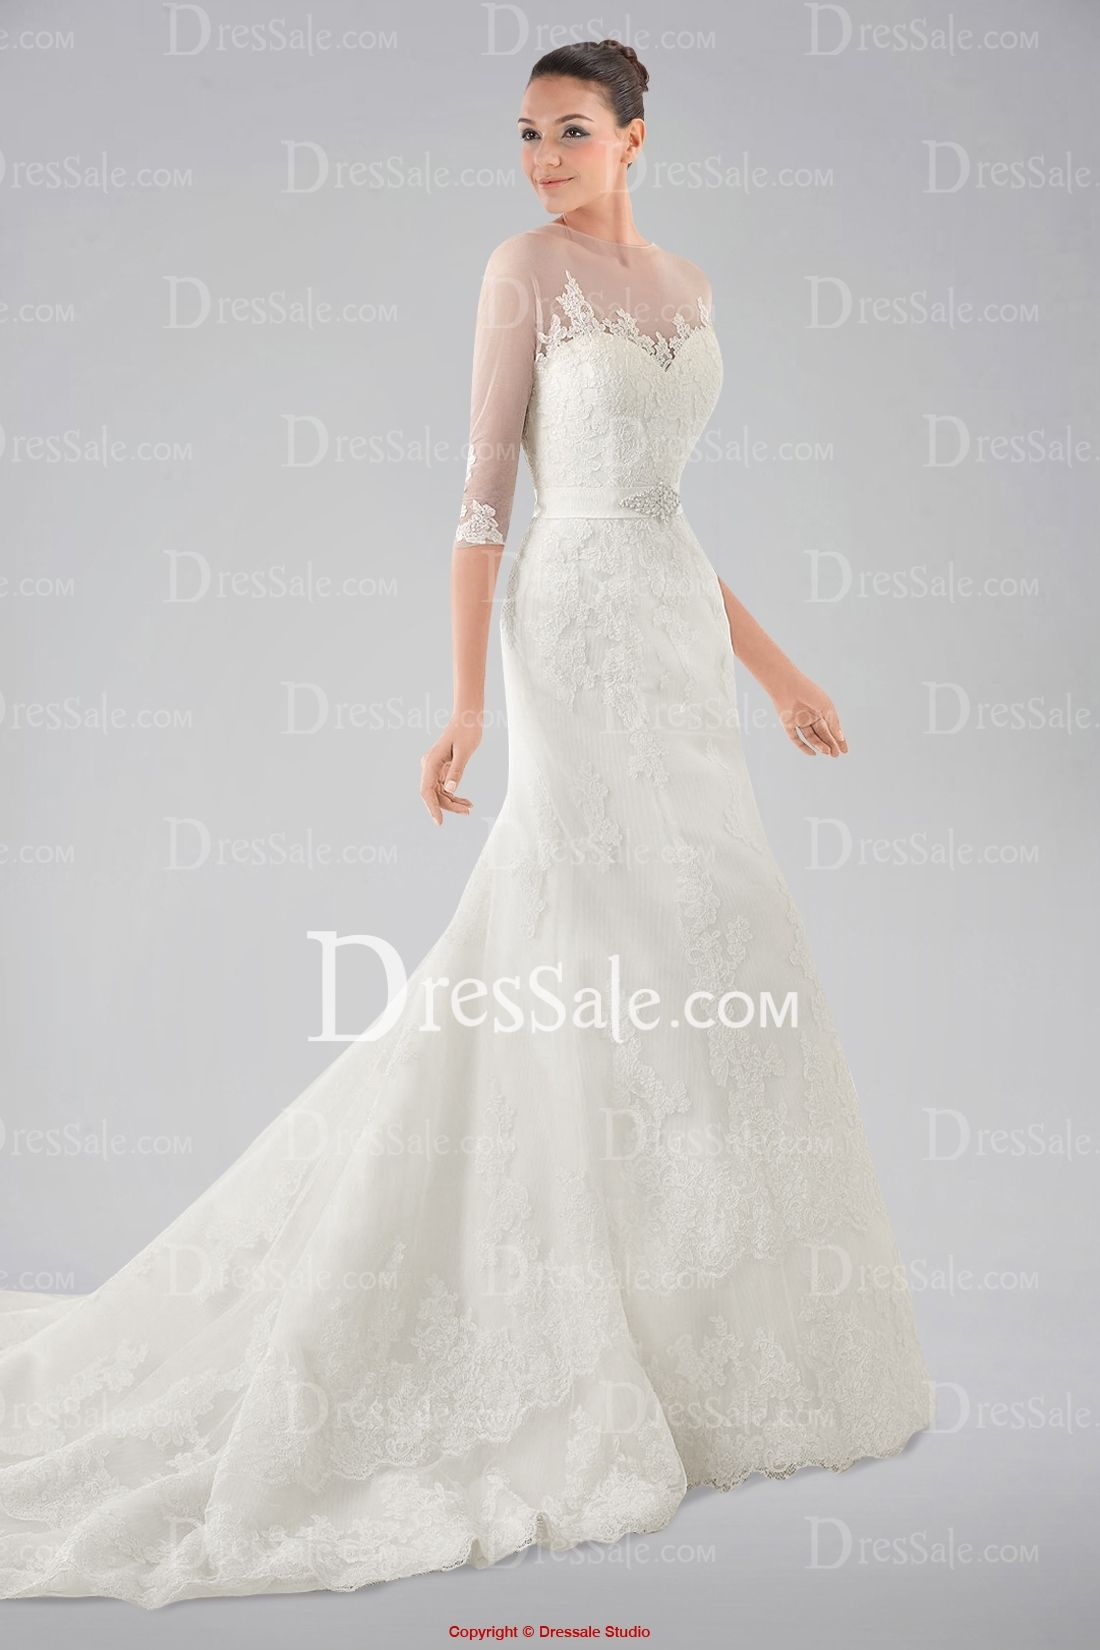 Seductive illusion neckline lace wedding gown with length